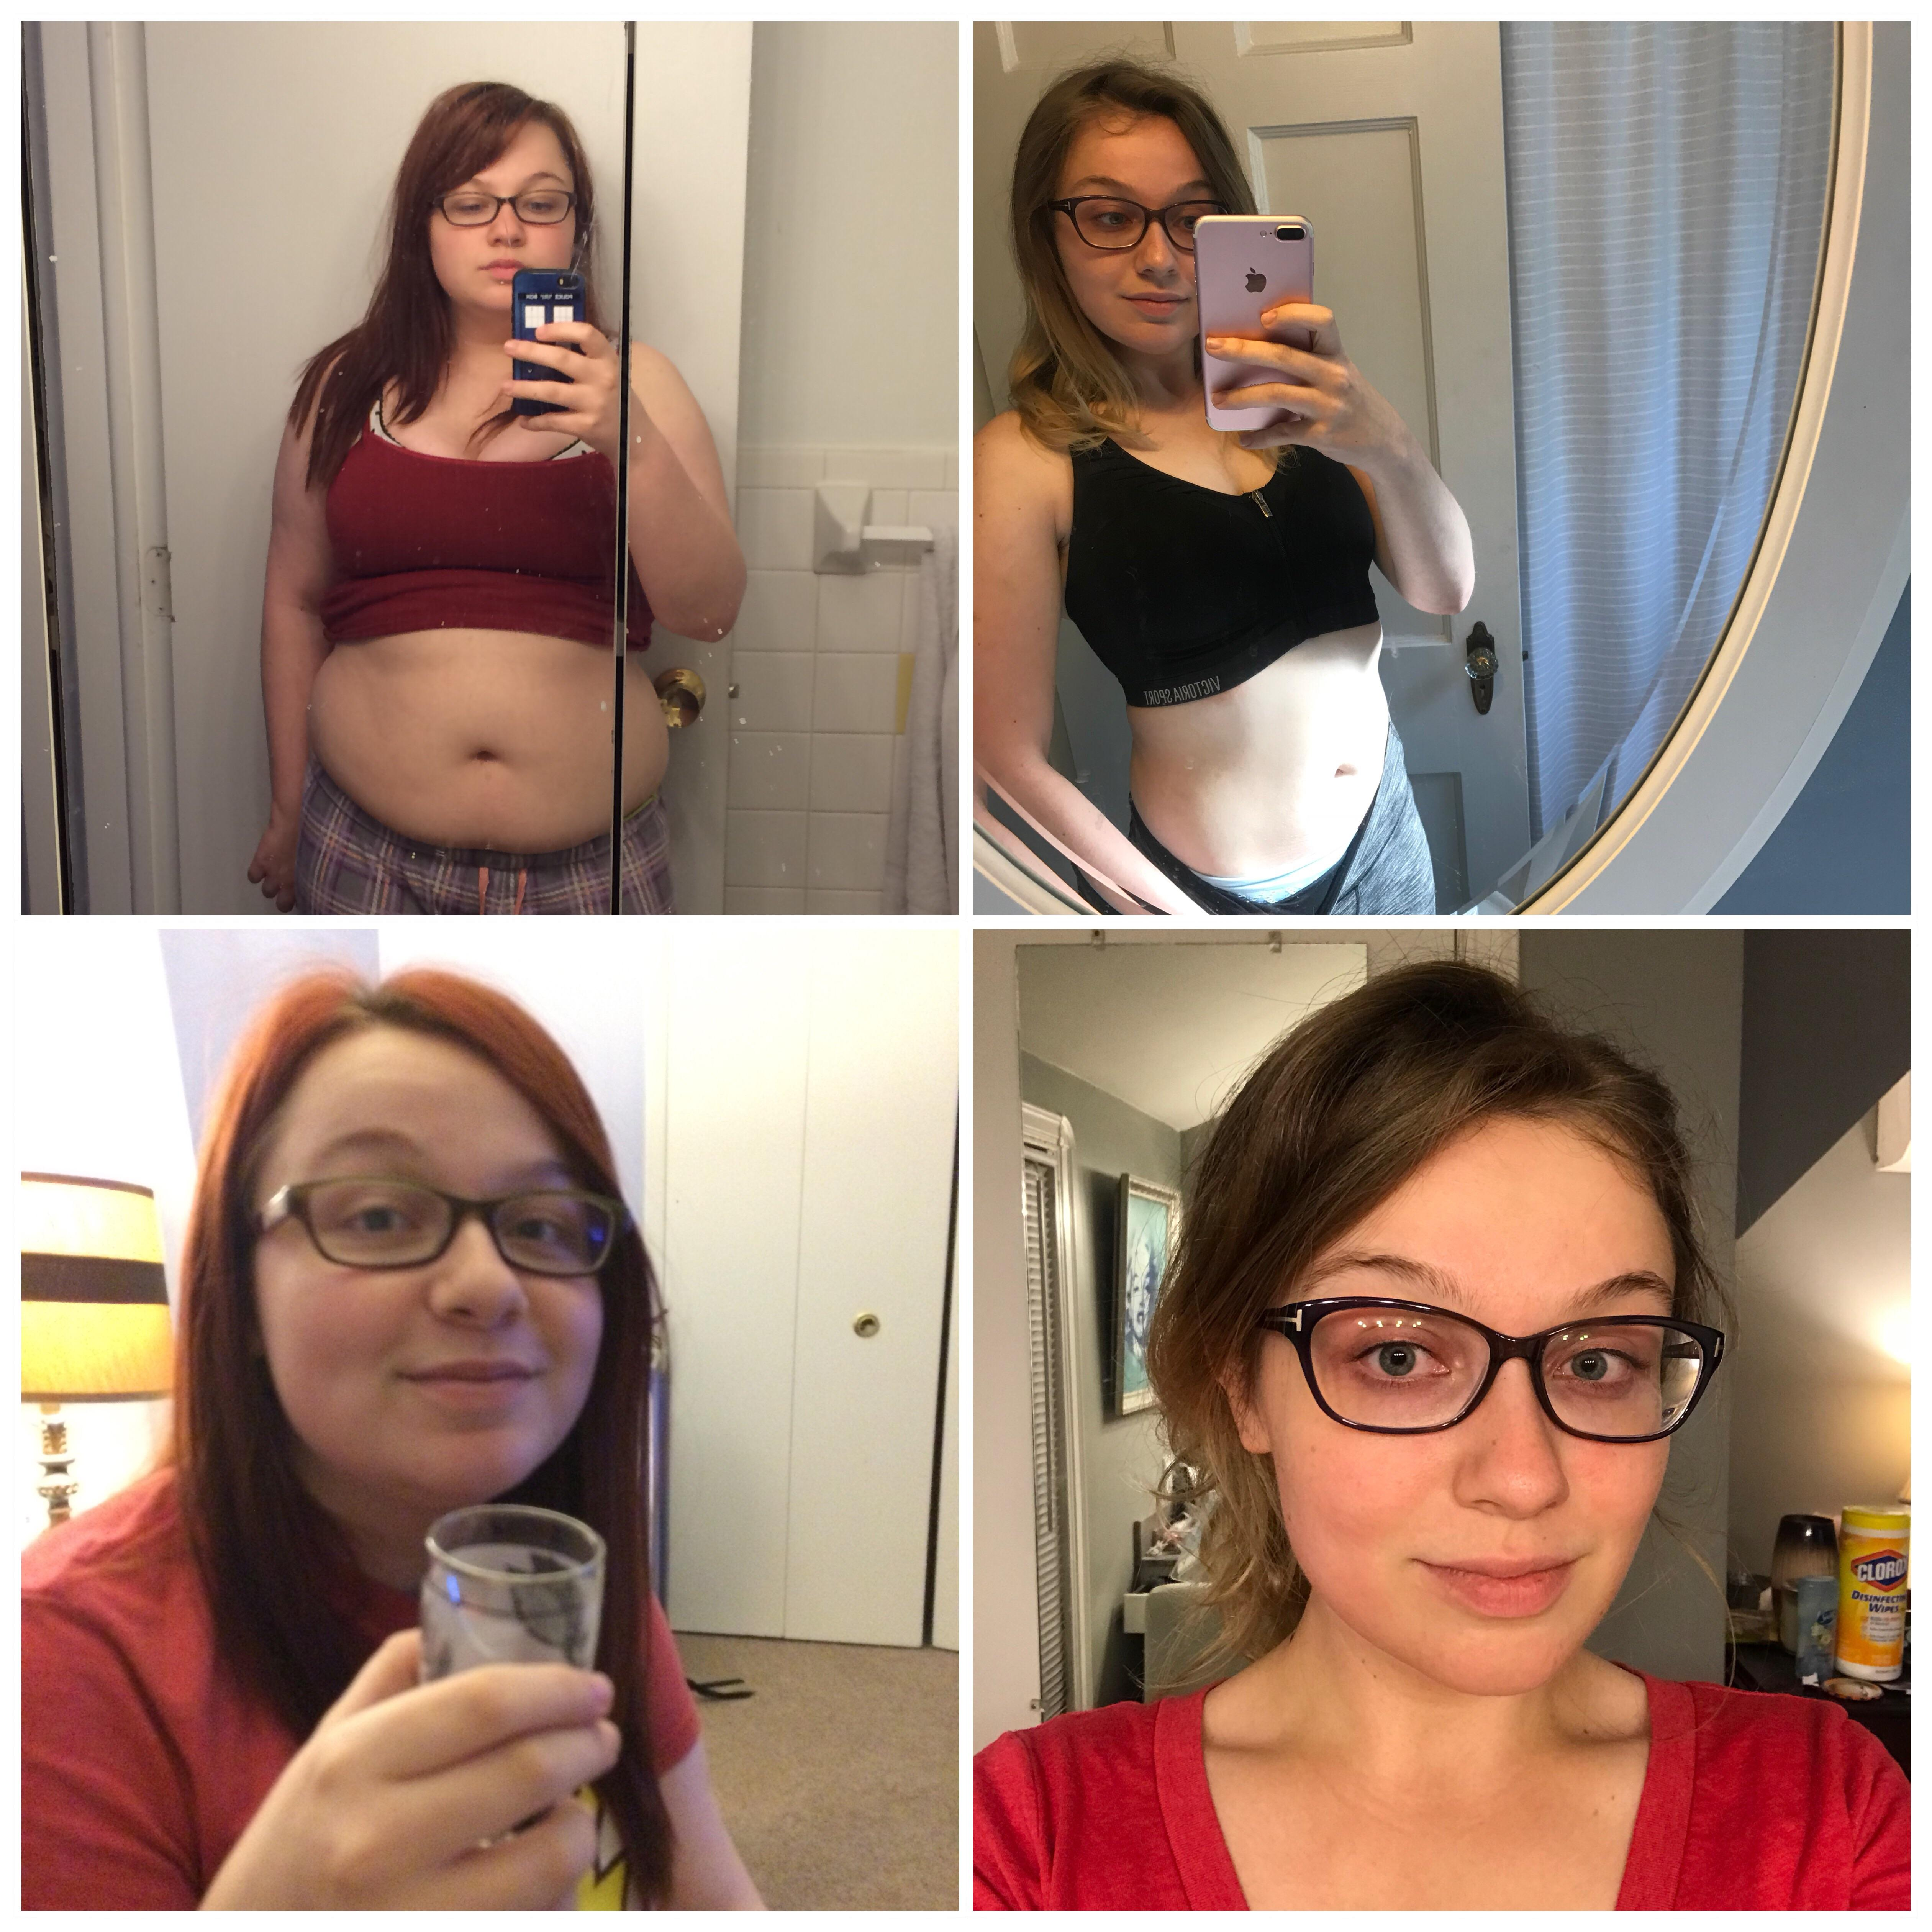 Before and After 55 lbs Weight Loss 5'3 Female 180 lbs to 125 lbs